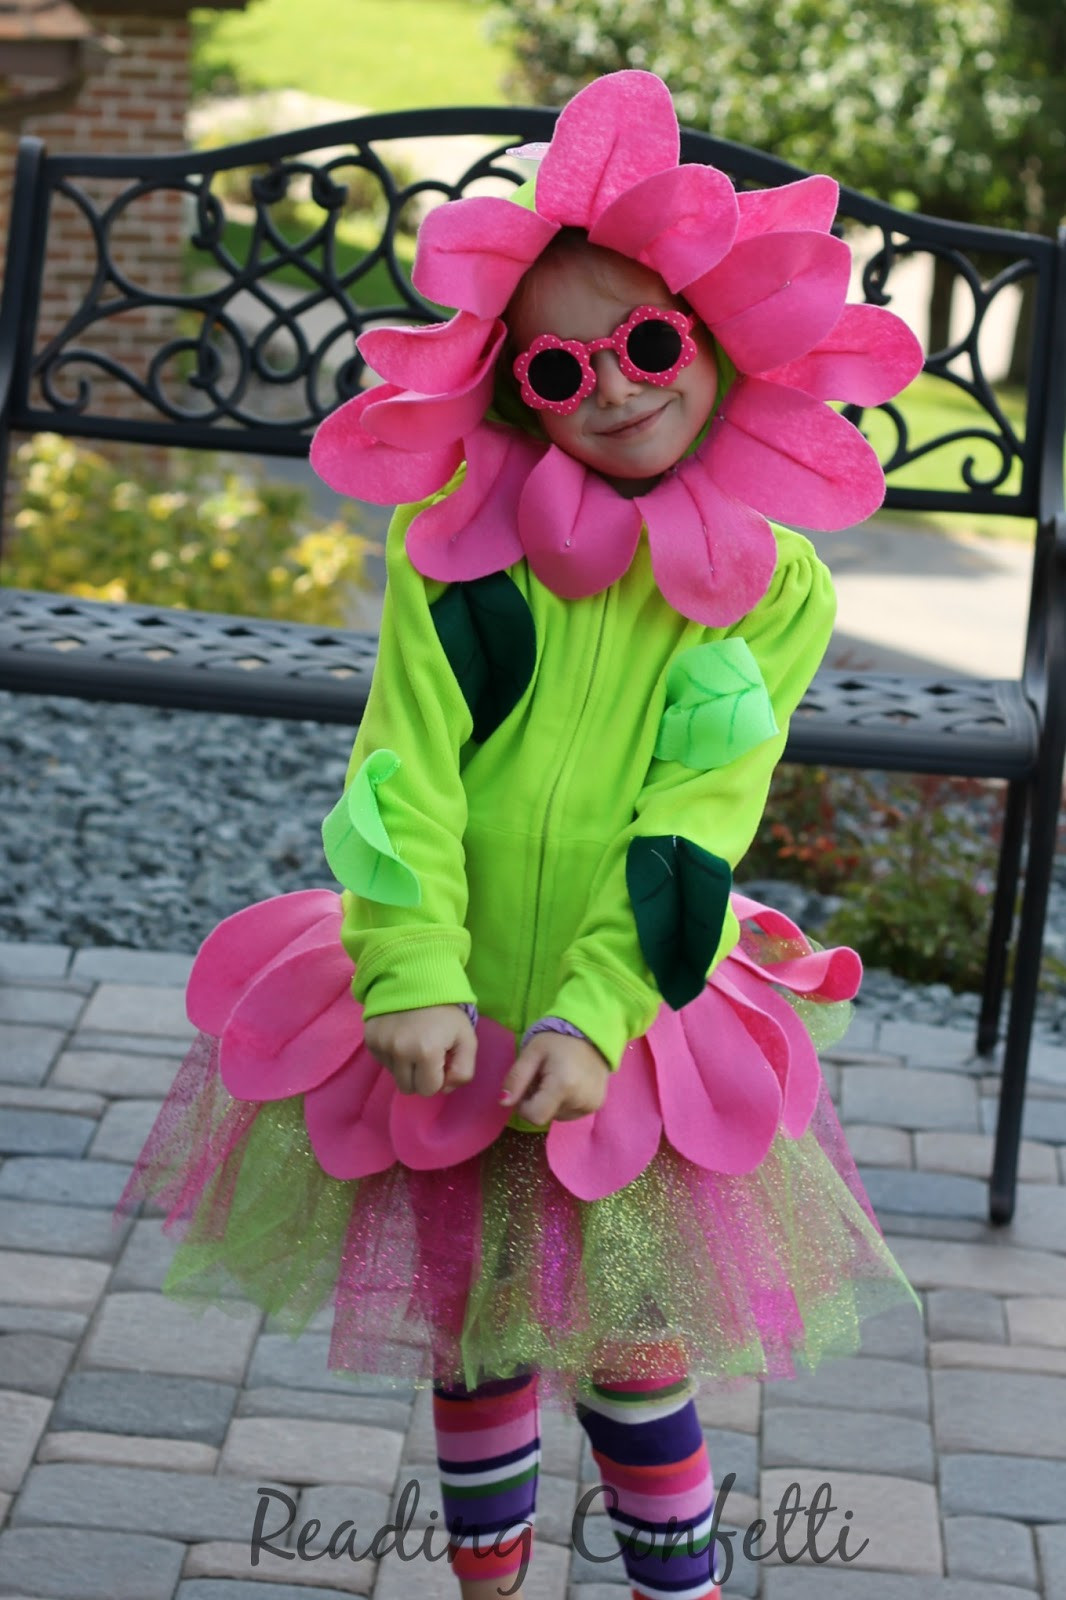 Flower Halloween Costume For Adults  DIY Flower Costume Reading Confetti